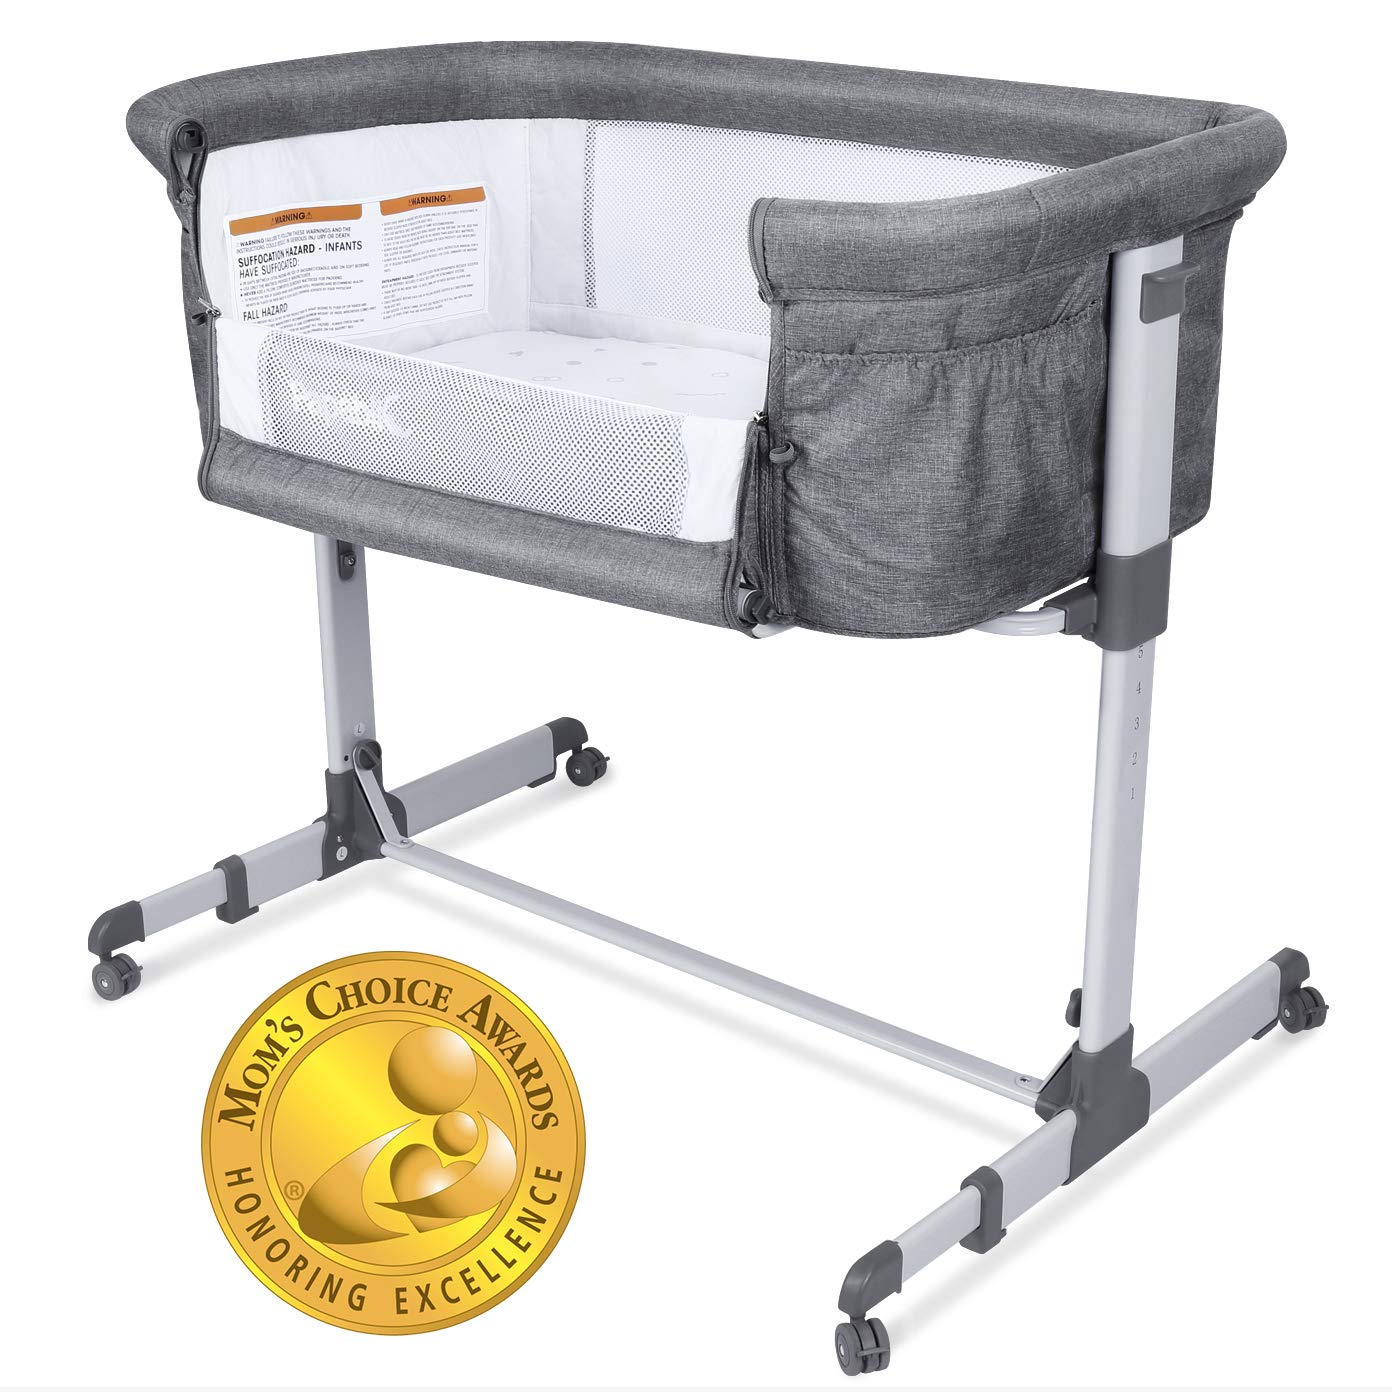 Papablic Portable 2-In-1 Bassinet For Baby